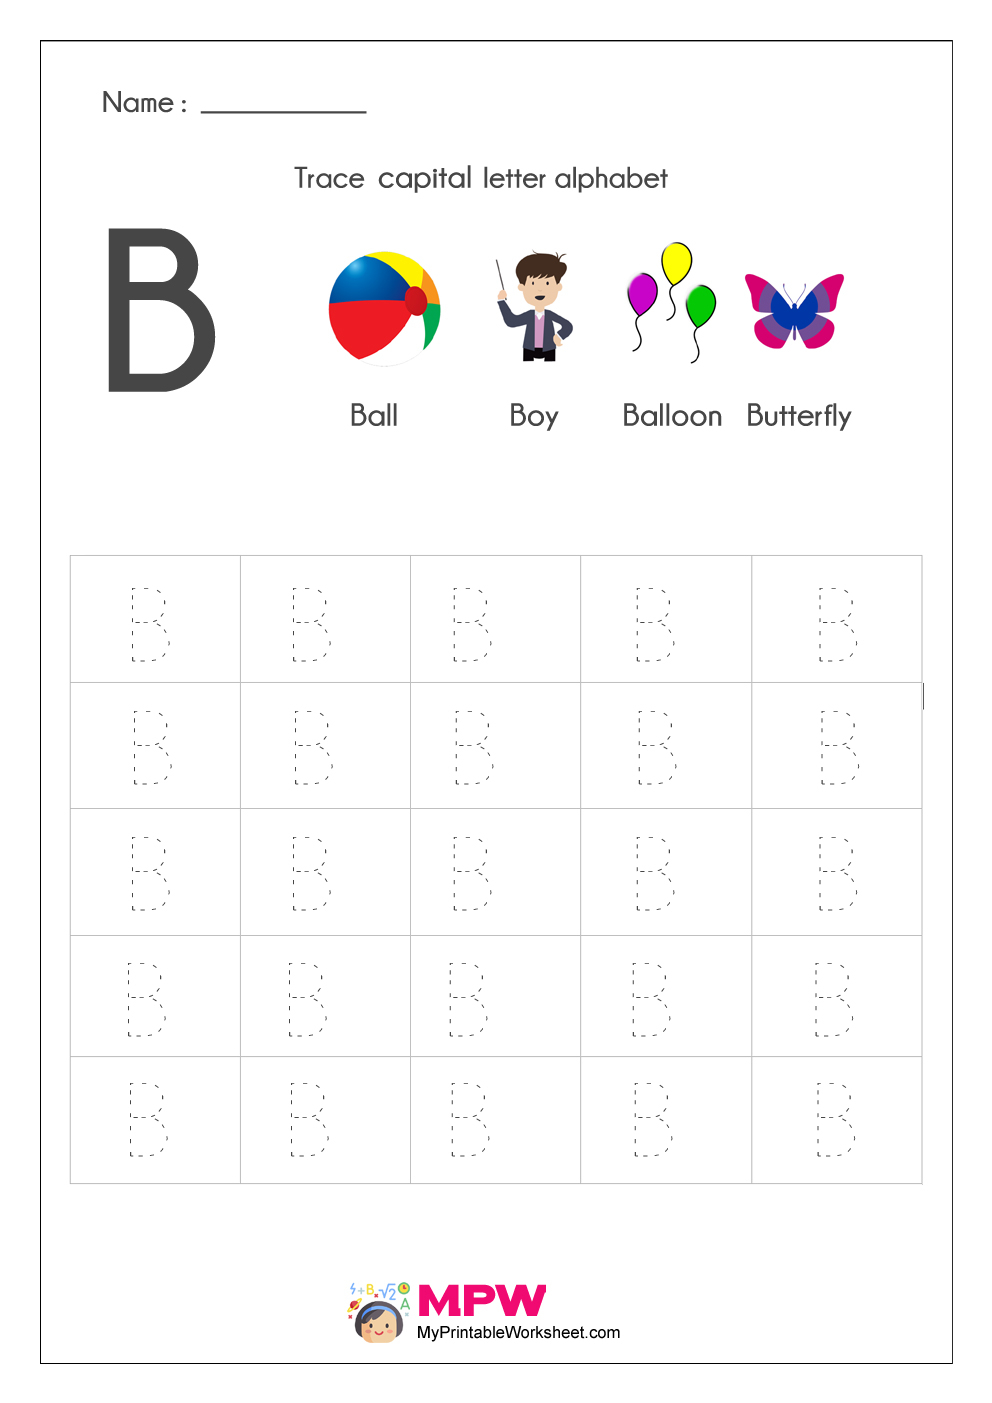 Alphabet Tracing Worksheets, Printable English Capital throughout Letter B Tracing Worksheets Free